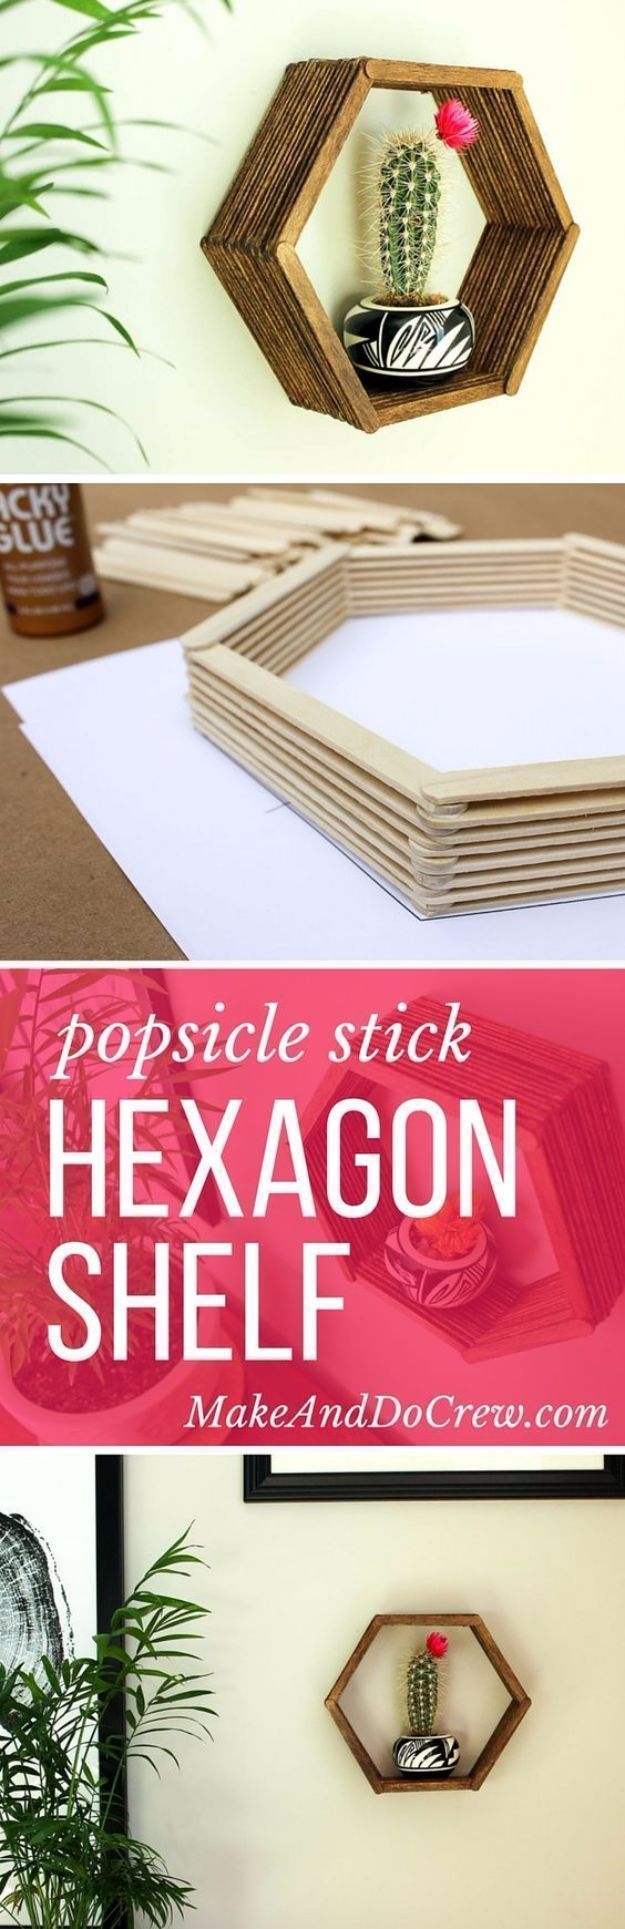 DIY Wall Art Ideas and Do It Yourself Wall Decor for Living Room, Bedroom, Bathroom, Teen Rooms |   DIY Wall Art Popsicle Stick Hexagon Shelf  | Cheap Ideas for Those On A Budget. Paint Awesome Hanging Pictures With These Easy Step By Step Tutorials and P